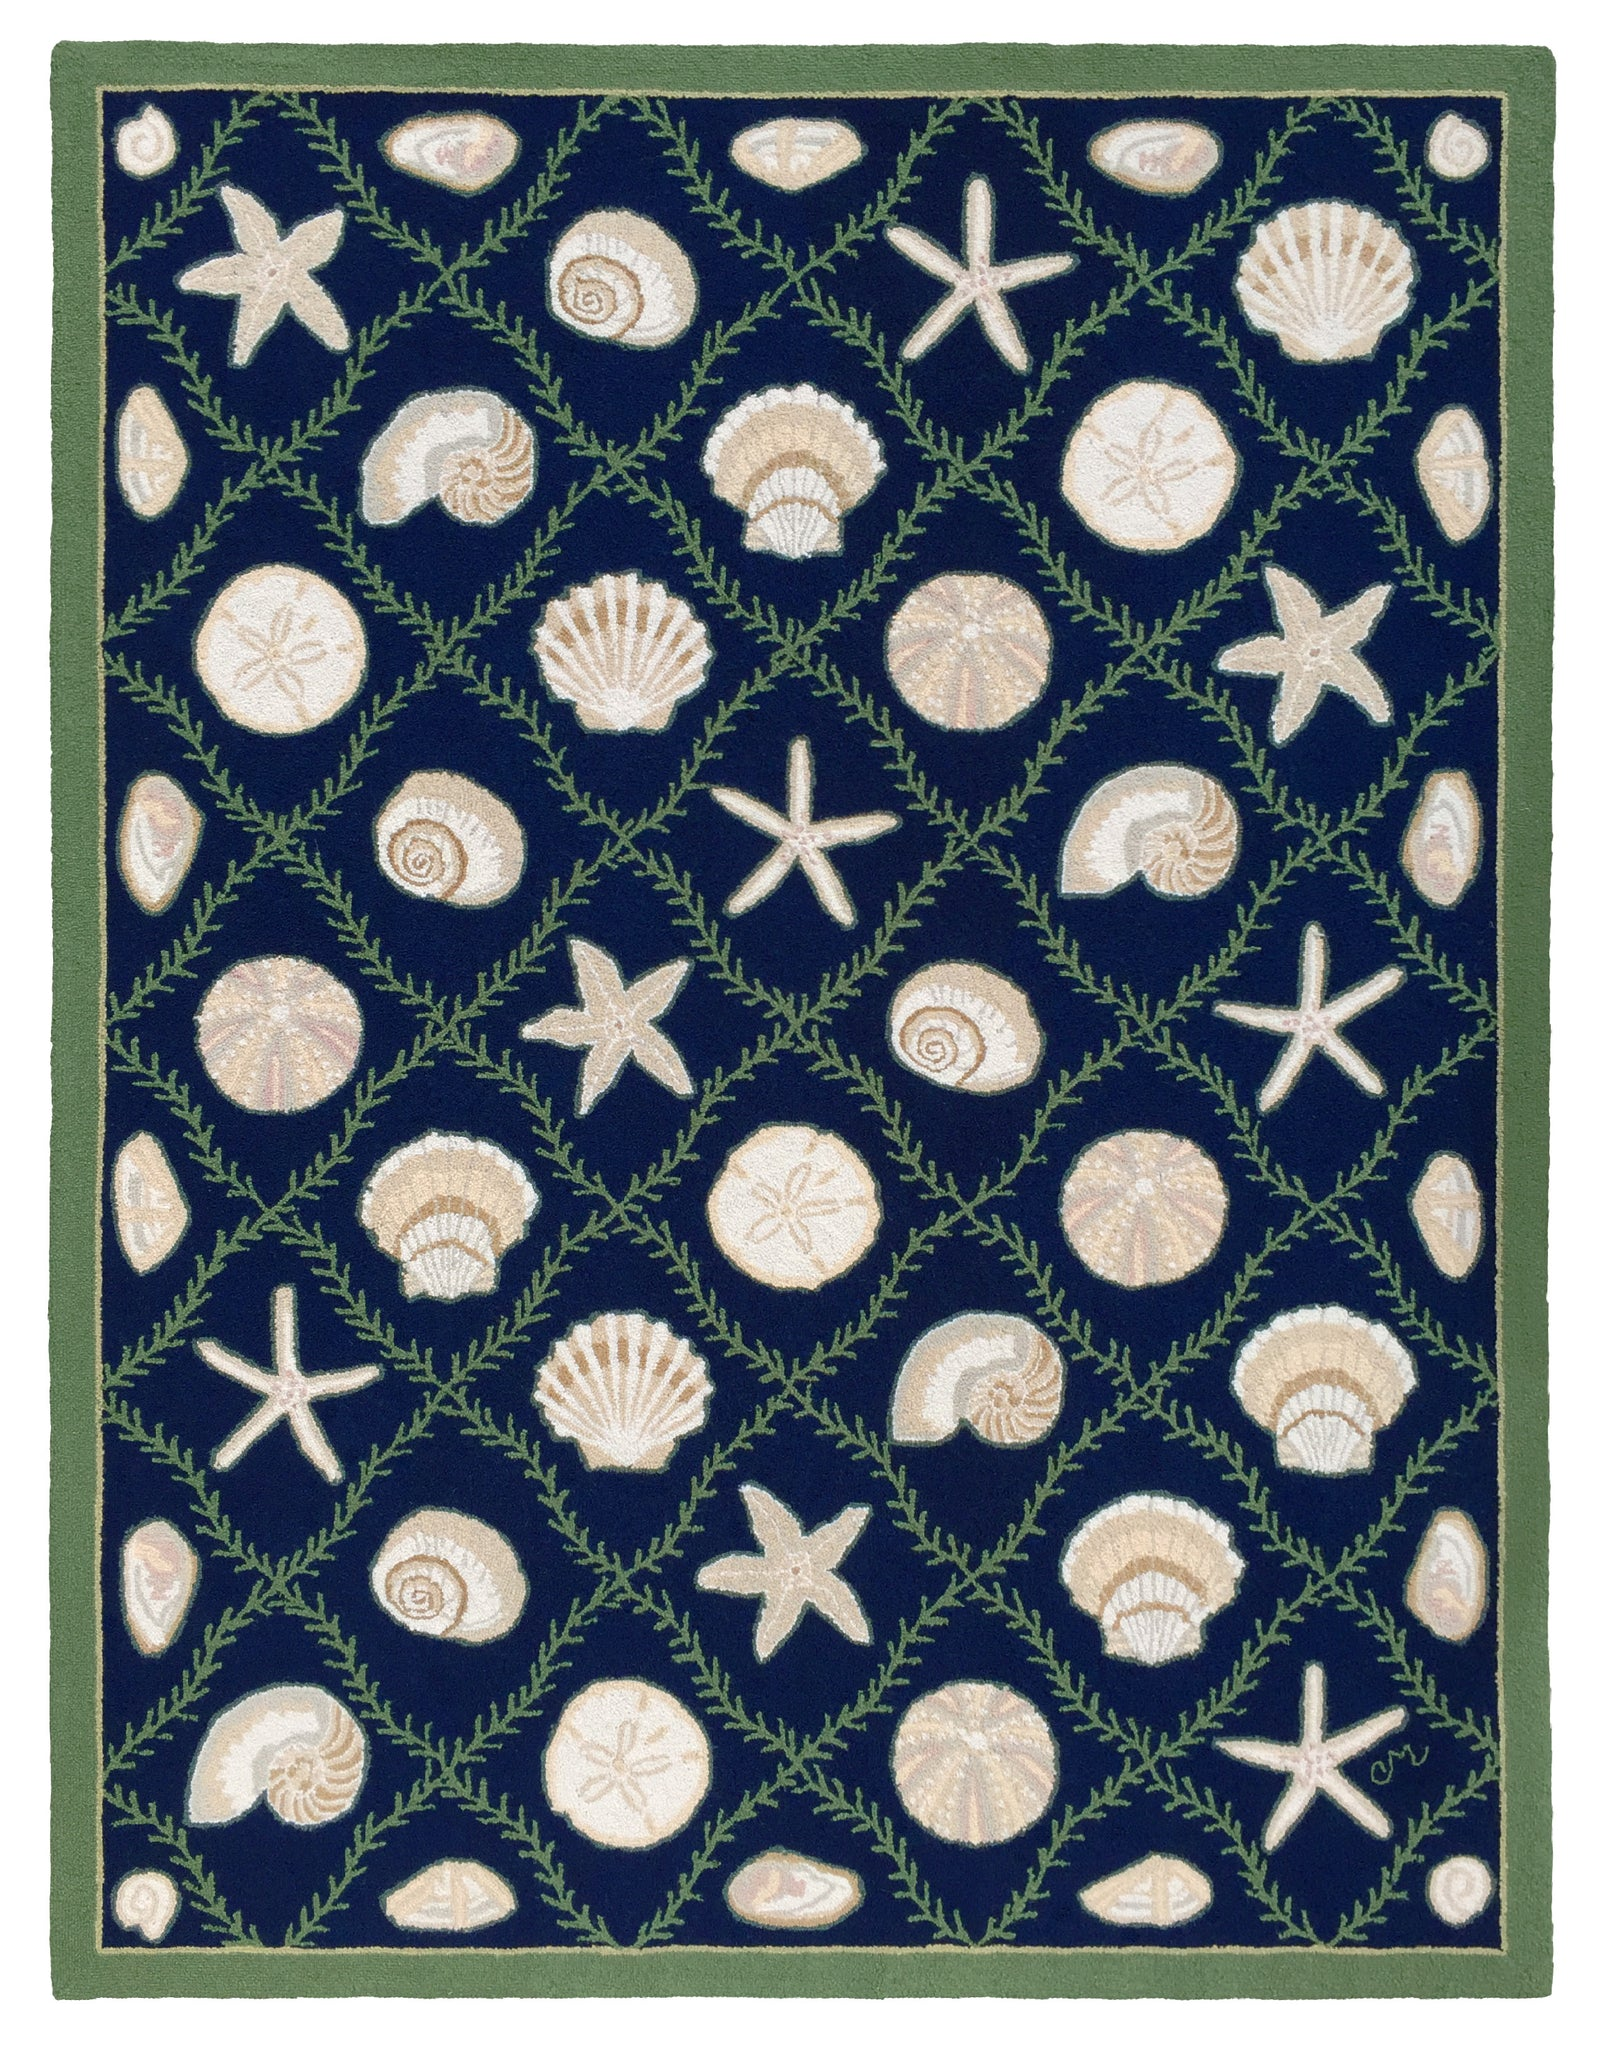 Cape Contemporary Shells Grid  7 x 9 R1312DKBL